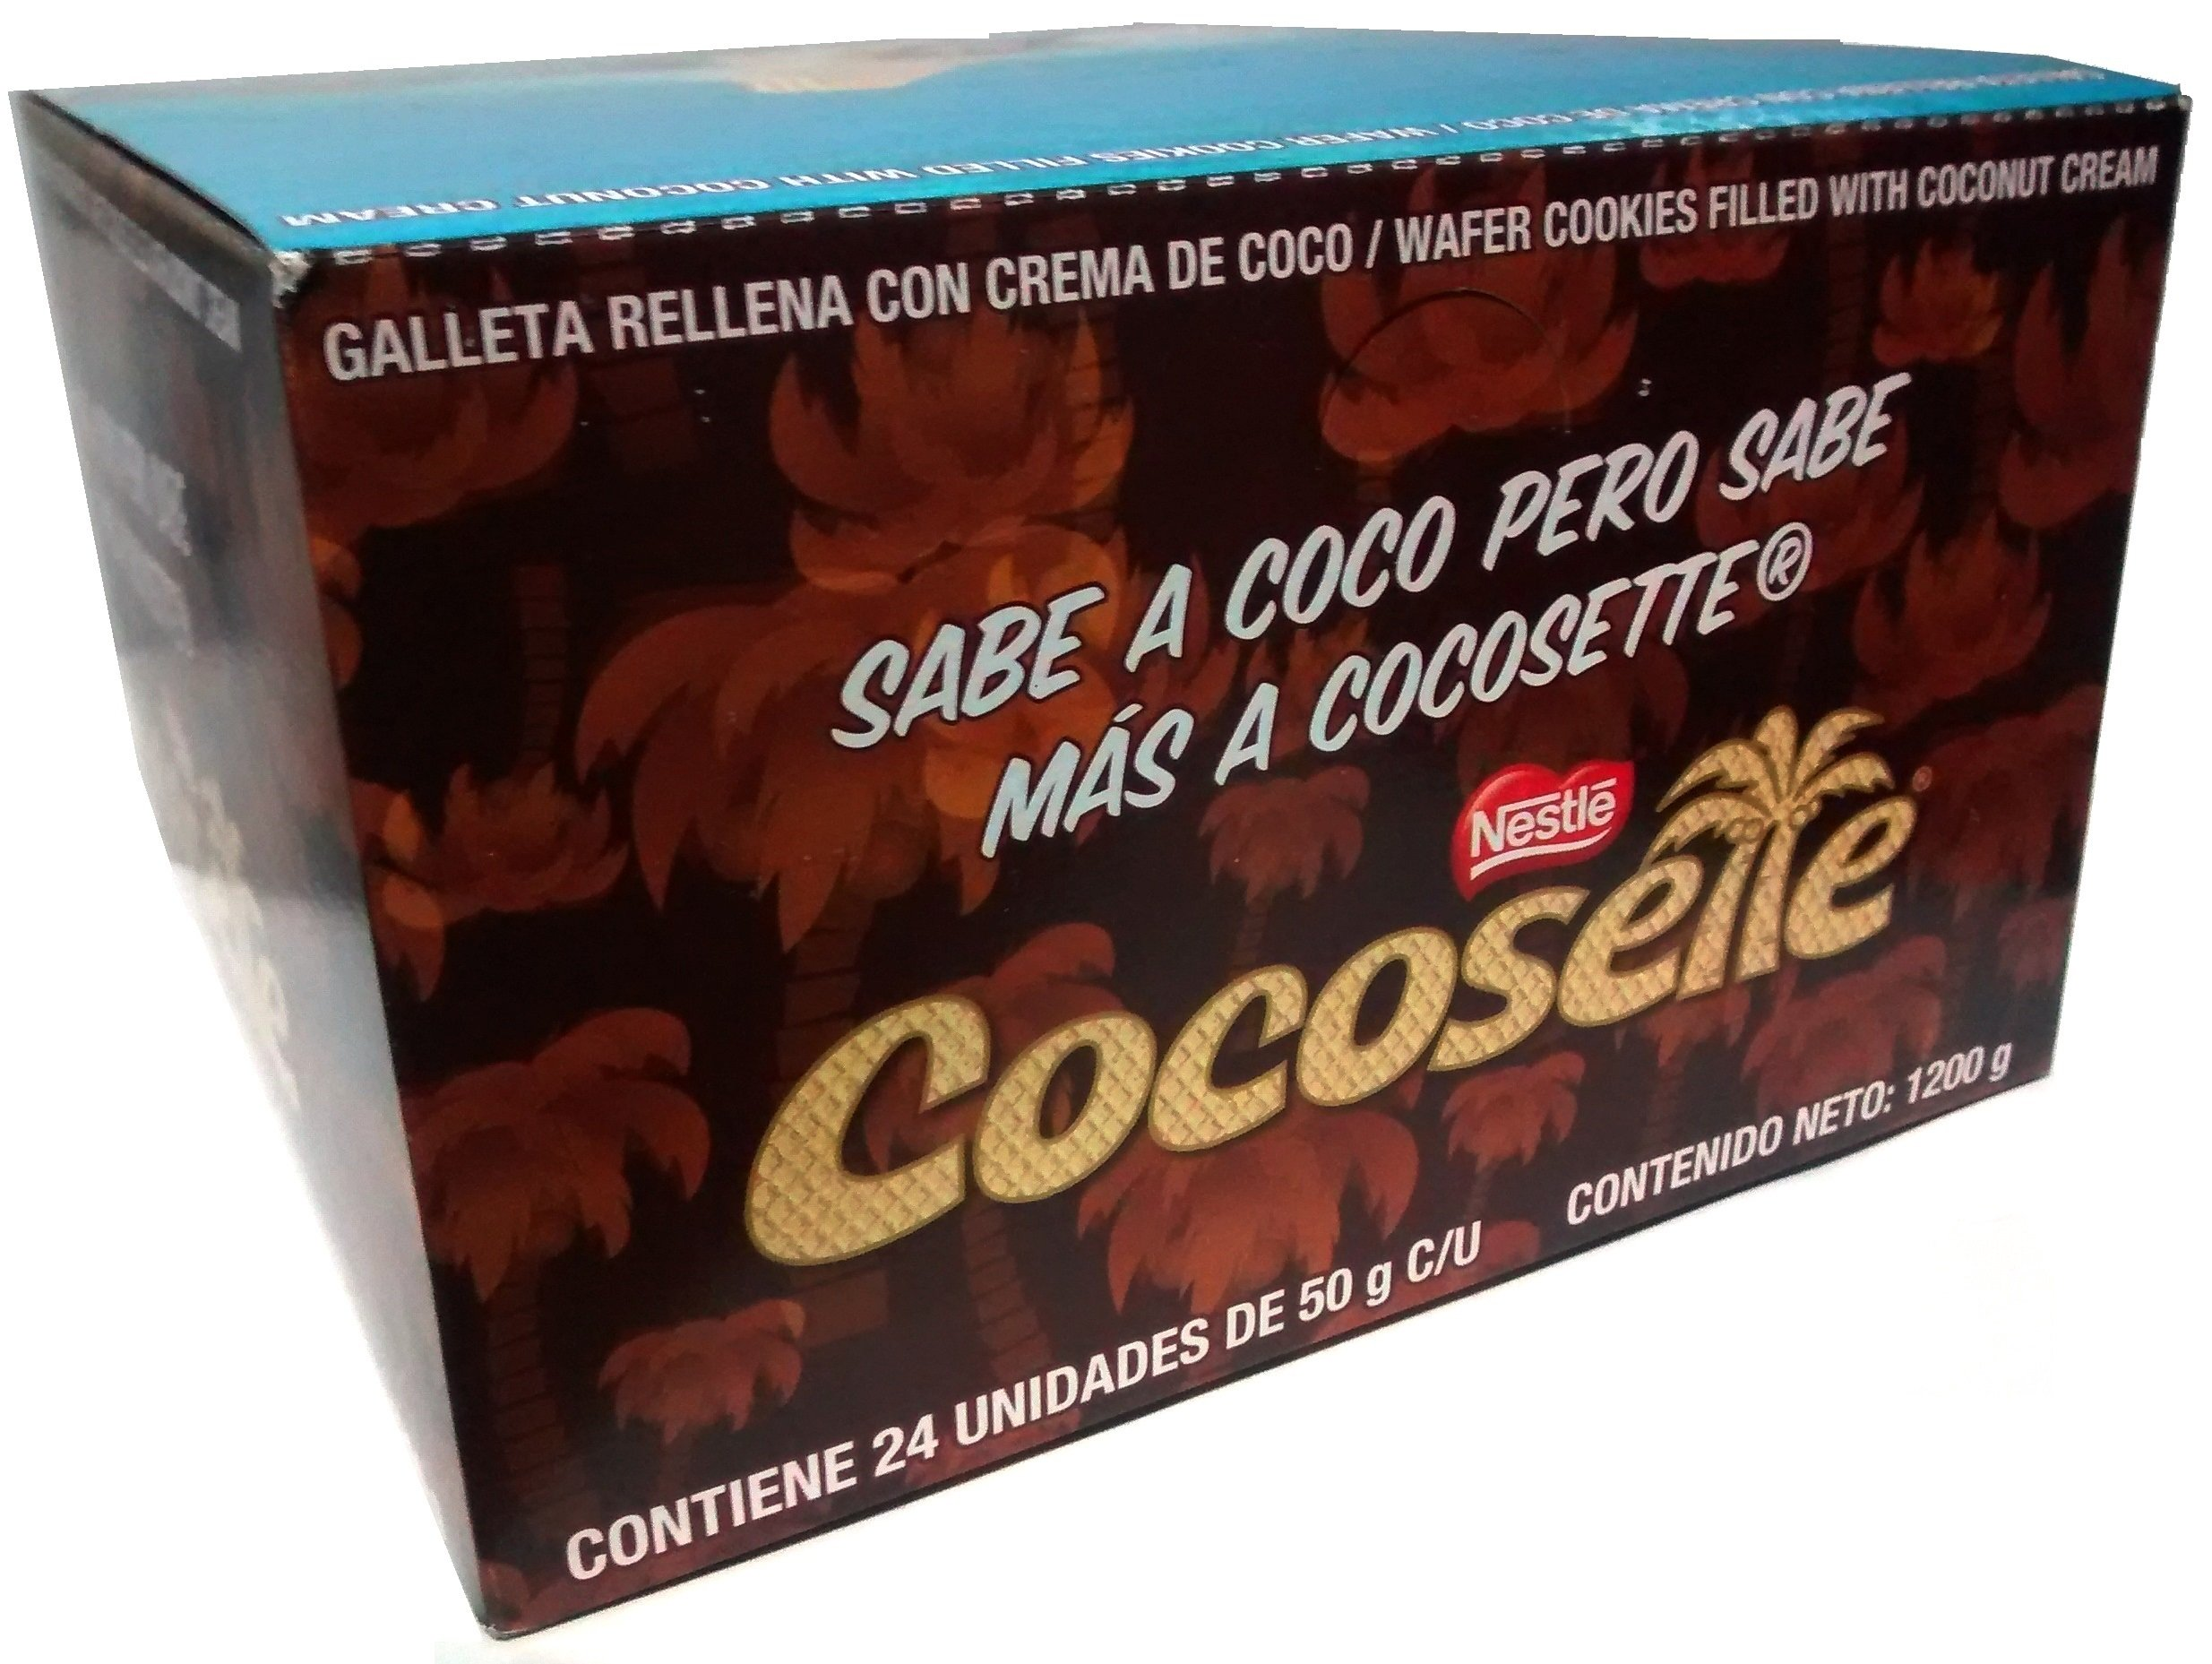 Cocosette - Pack of 24 - Wafer Cookie Filled with Coconut Cream (50 g. each) - 42.3 oz by Cocosette